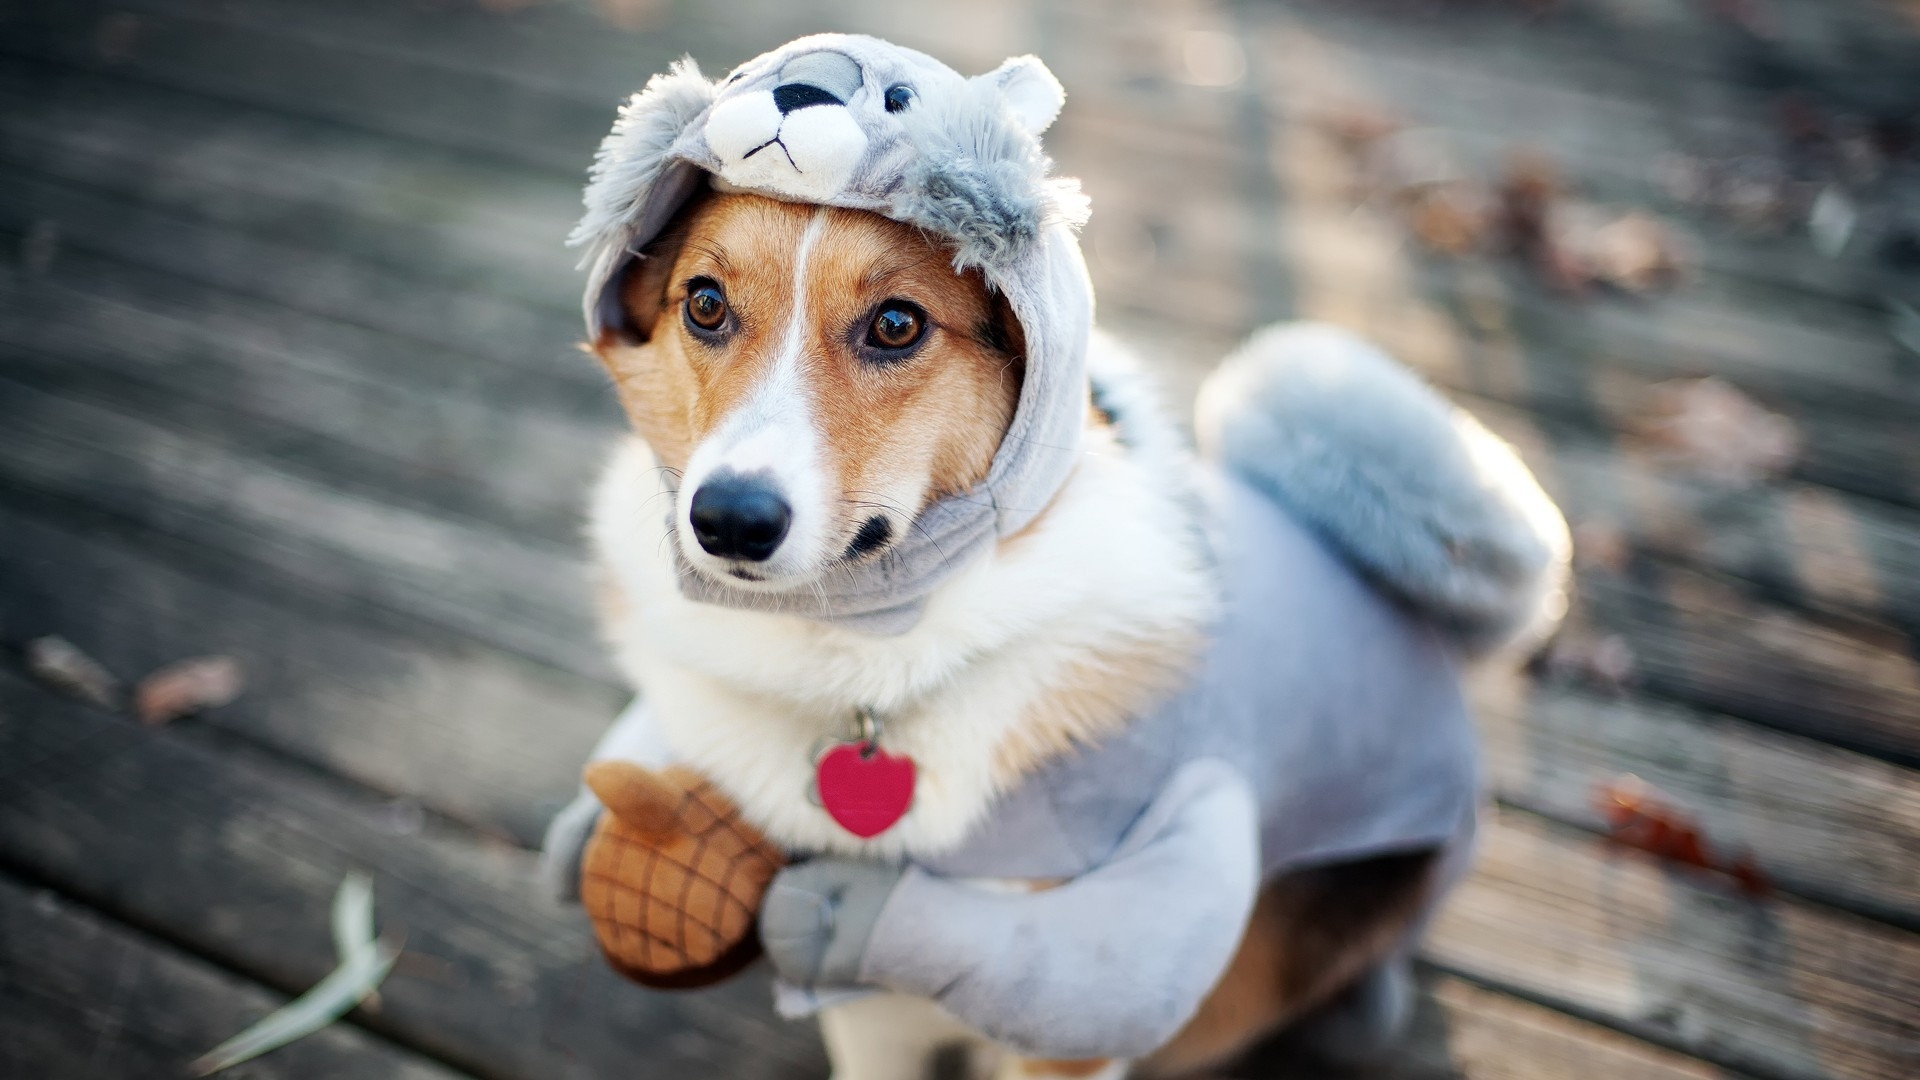 Funny sweet dog costume - Animal wallaper